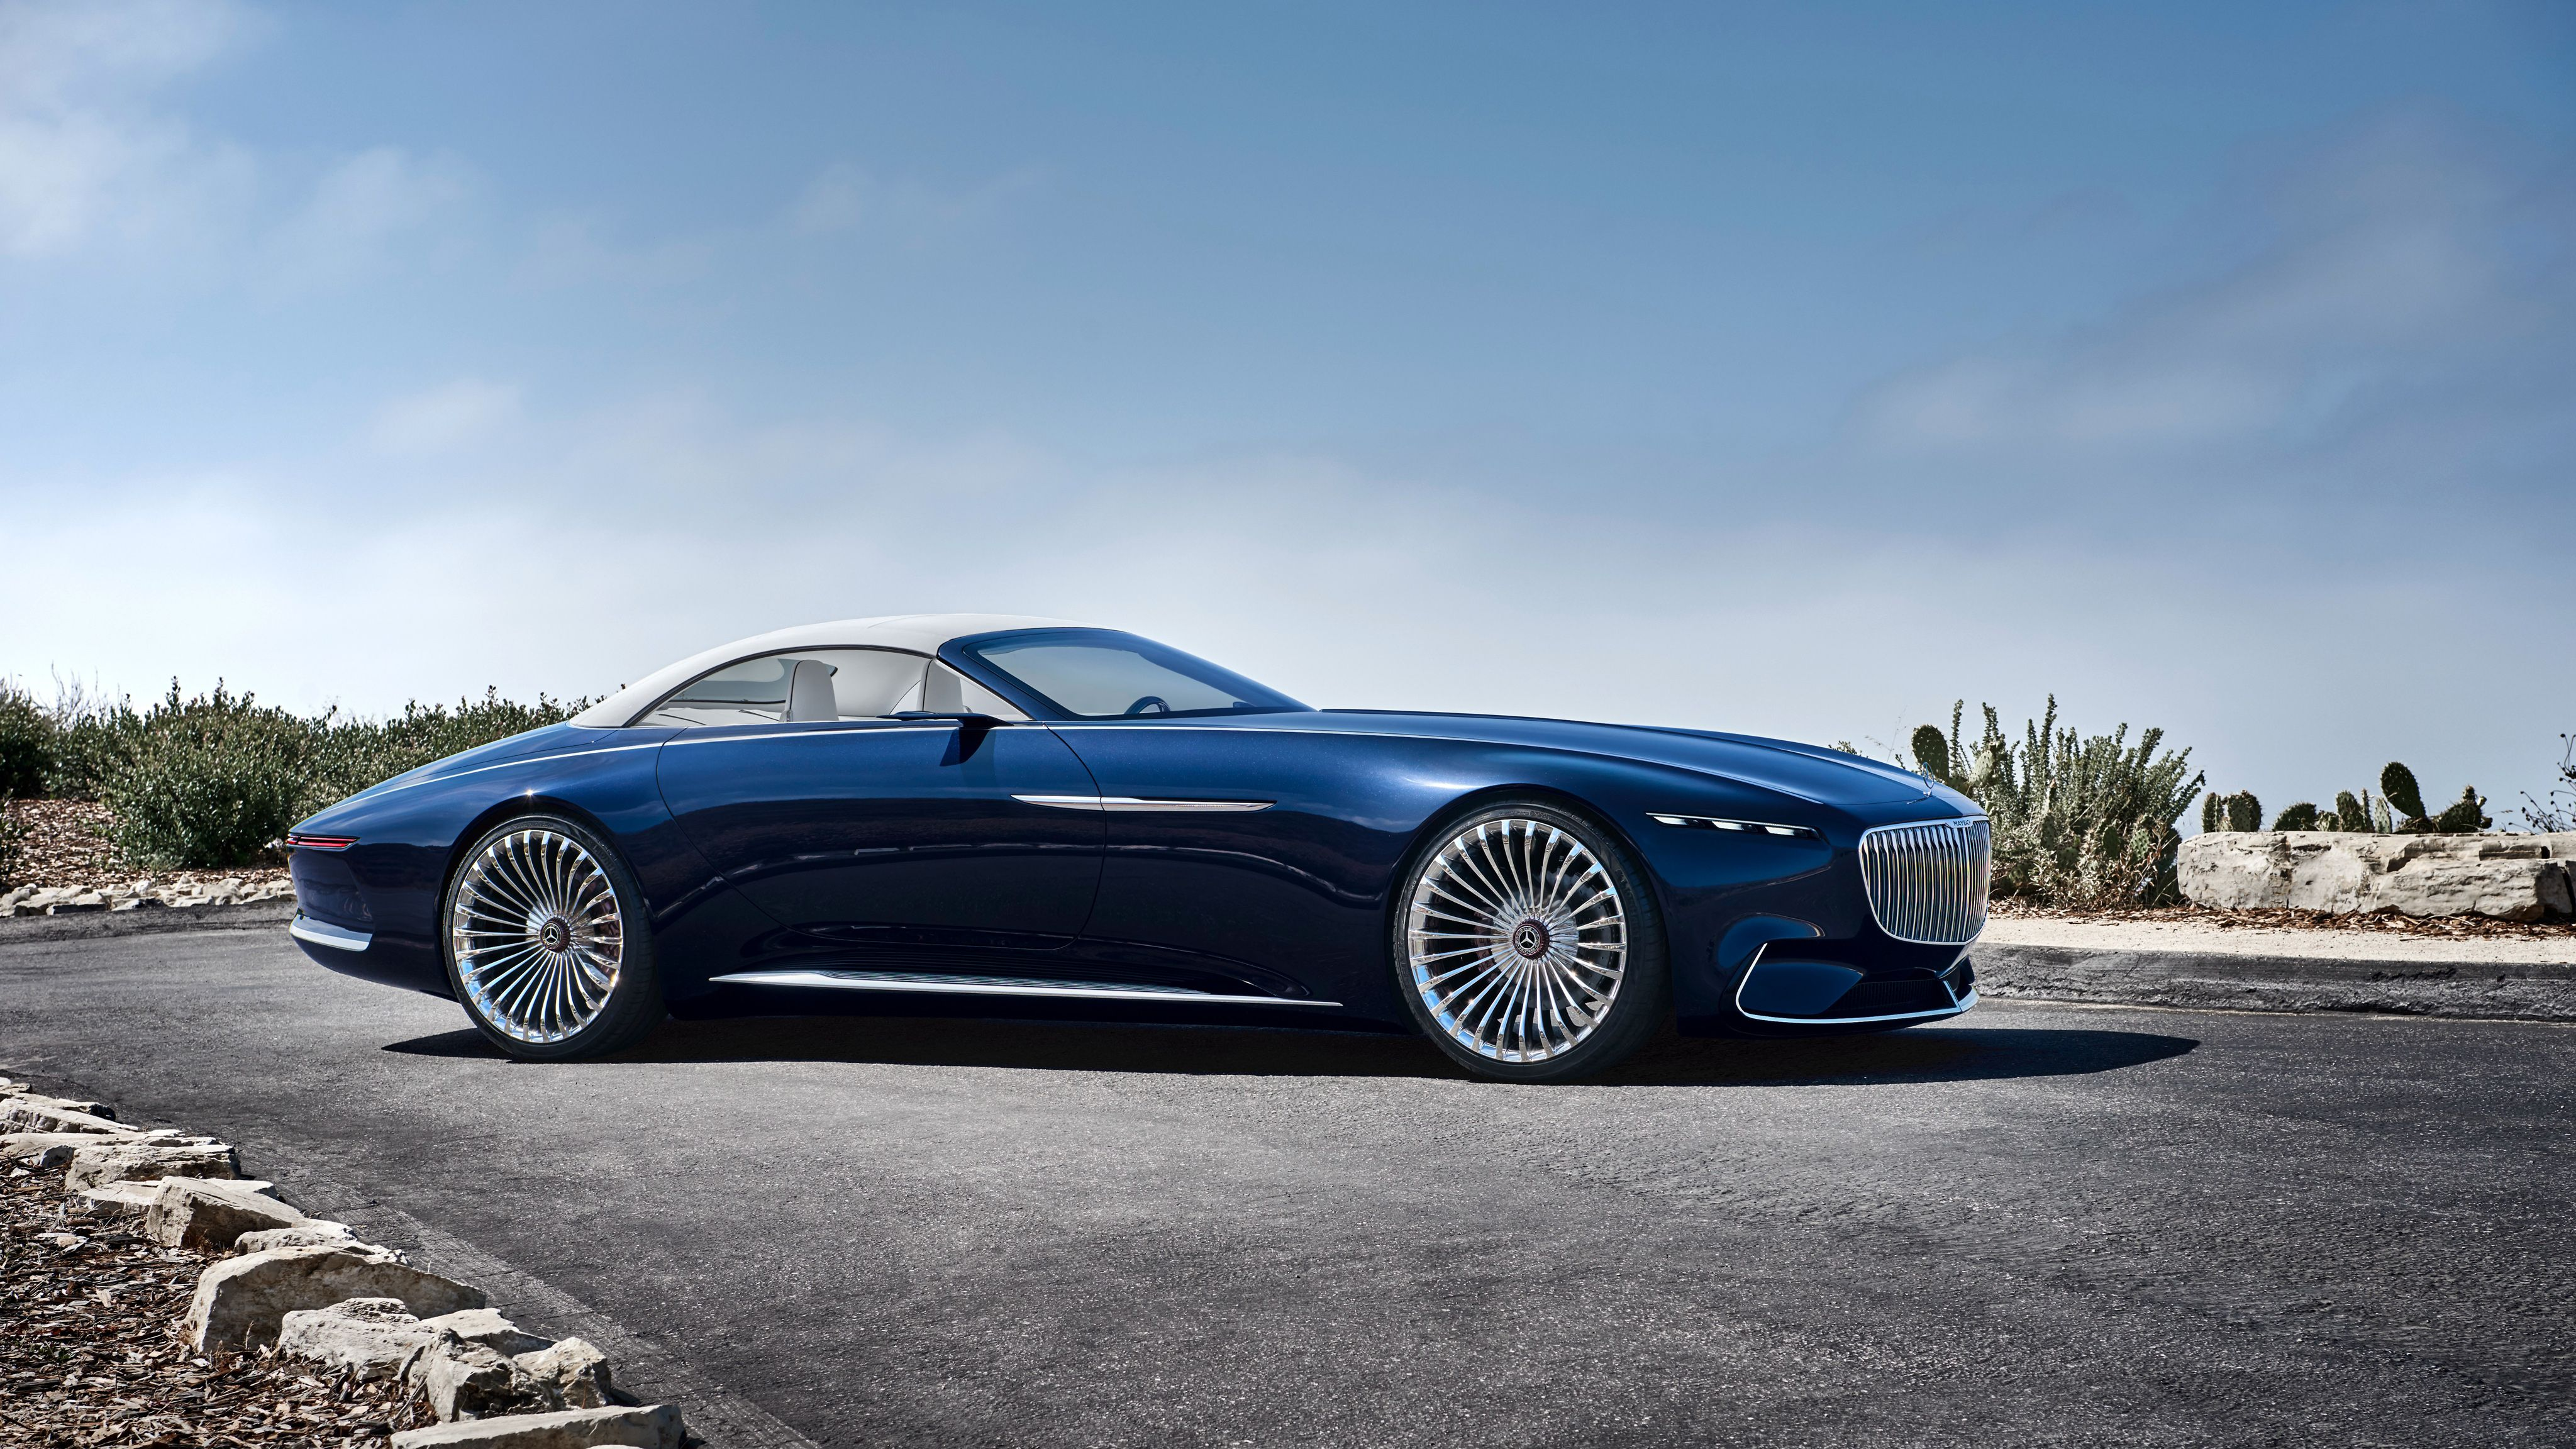 Vision Mercedes Maybach 6 Cabriolet Wallpaper For Mac 4pp Cars